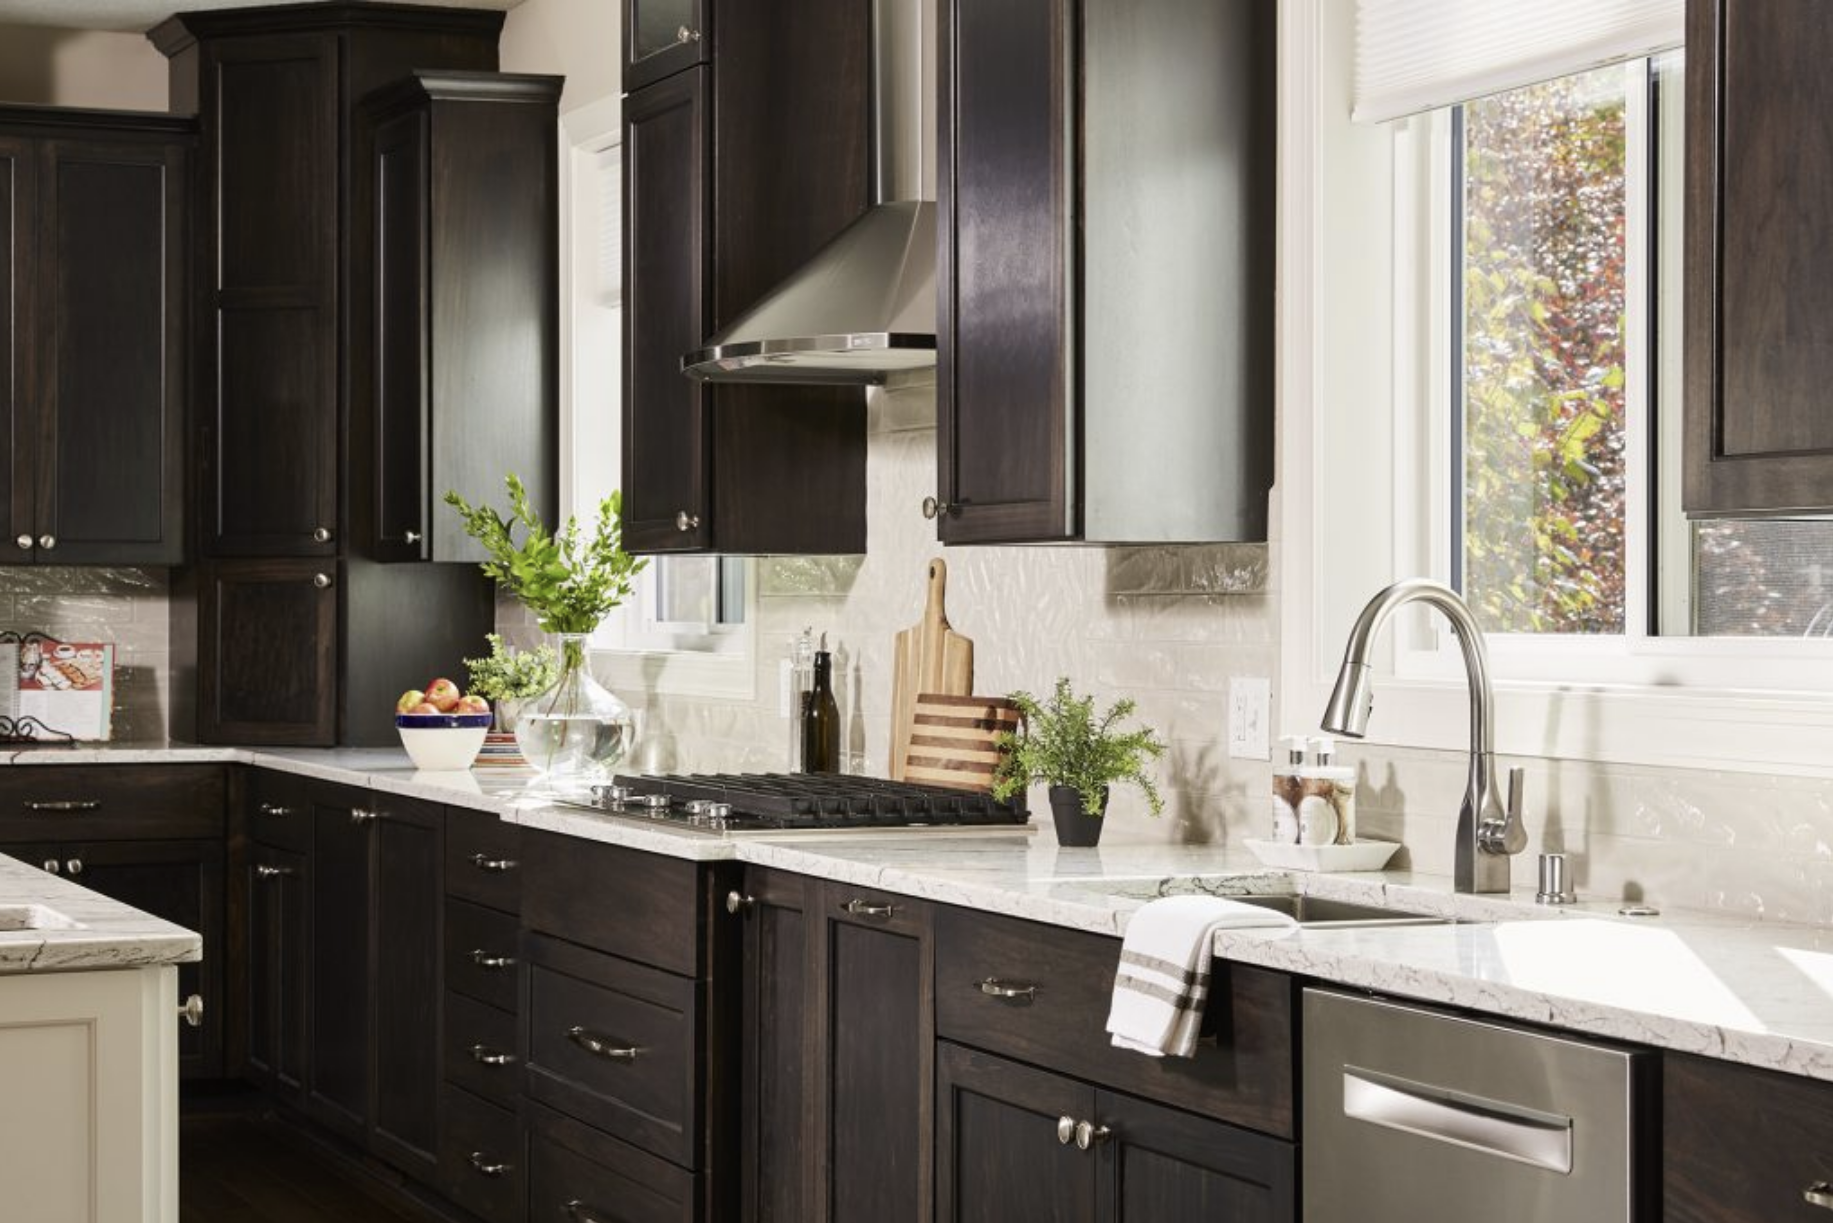 Stainless steel appliances and brushed nickel finishes kept things cohesive and classic in this kitchen.